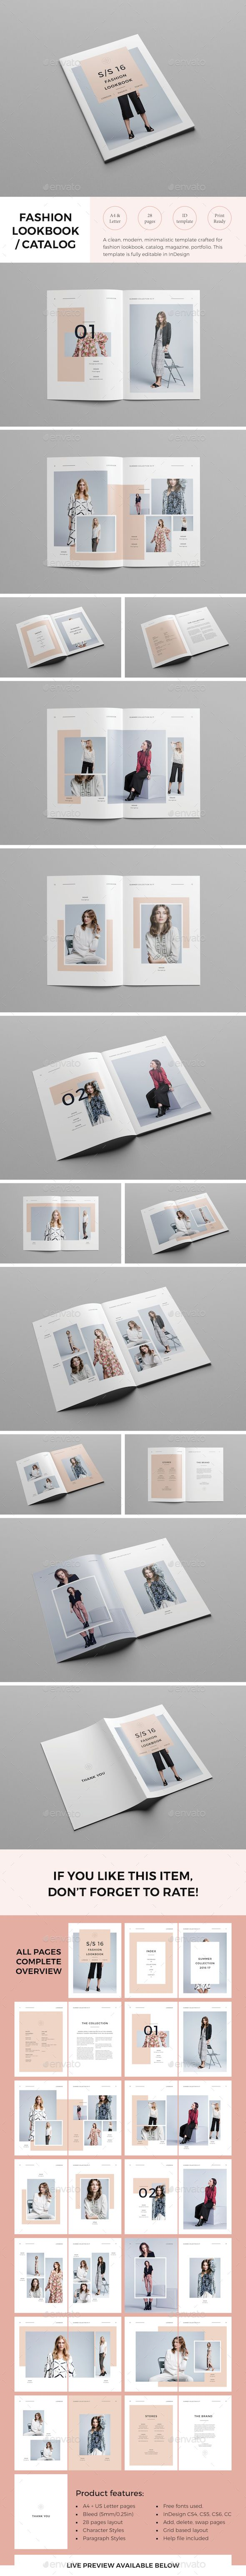 Lookbook Template InDesign INDD. Download here: http://graphicriver.net/item/lookbook-template/15315869?ref=ksioks